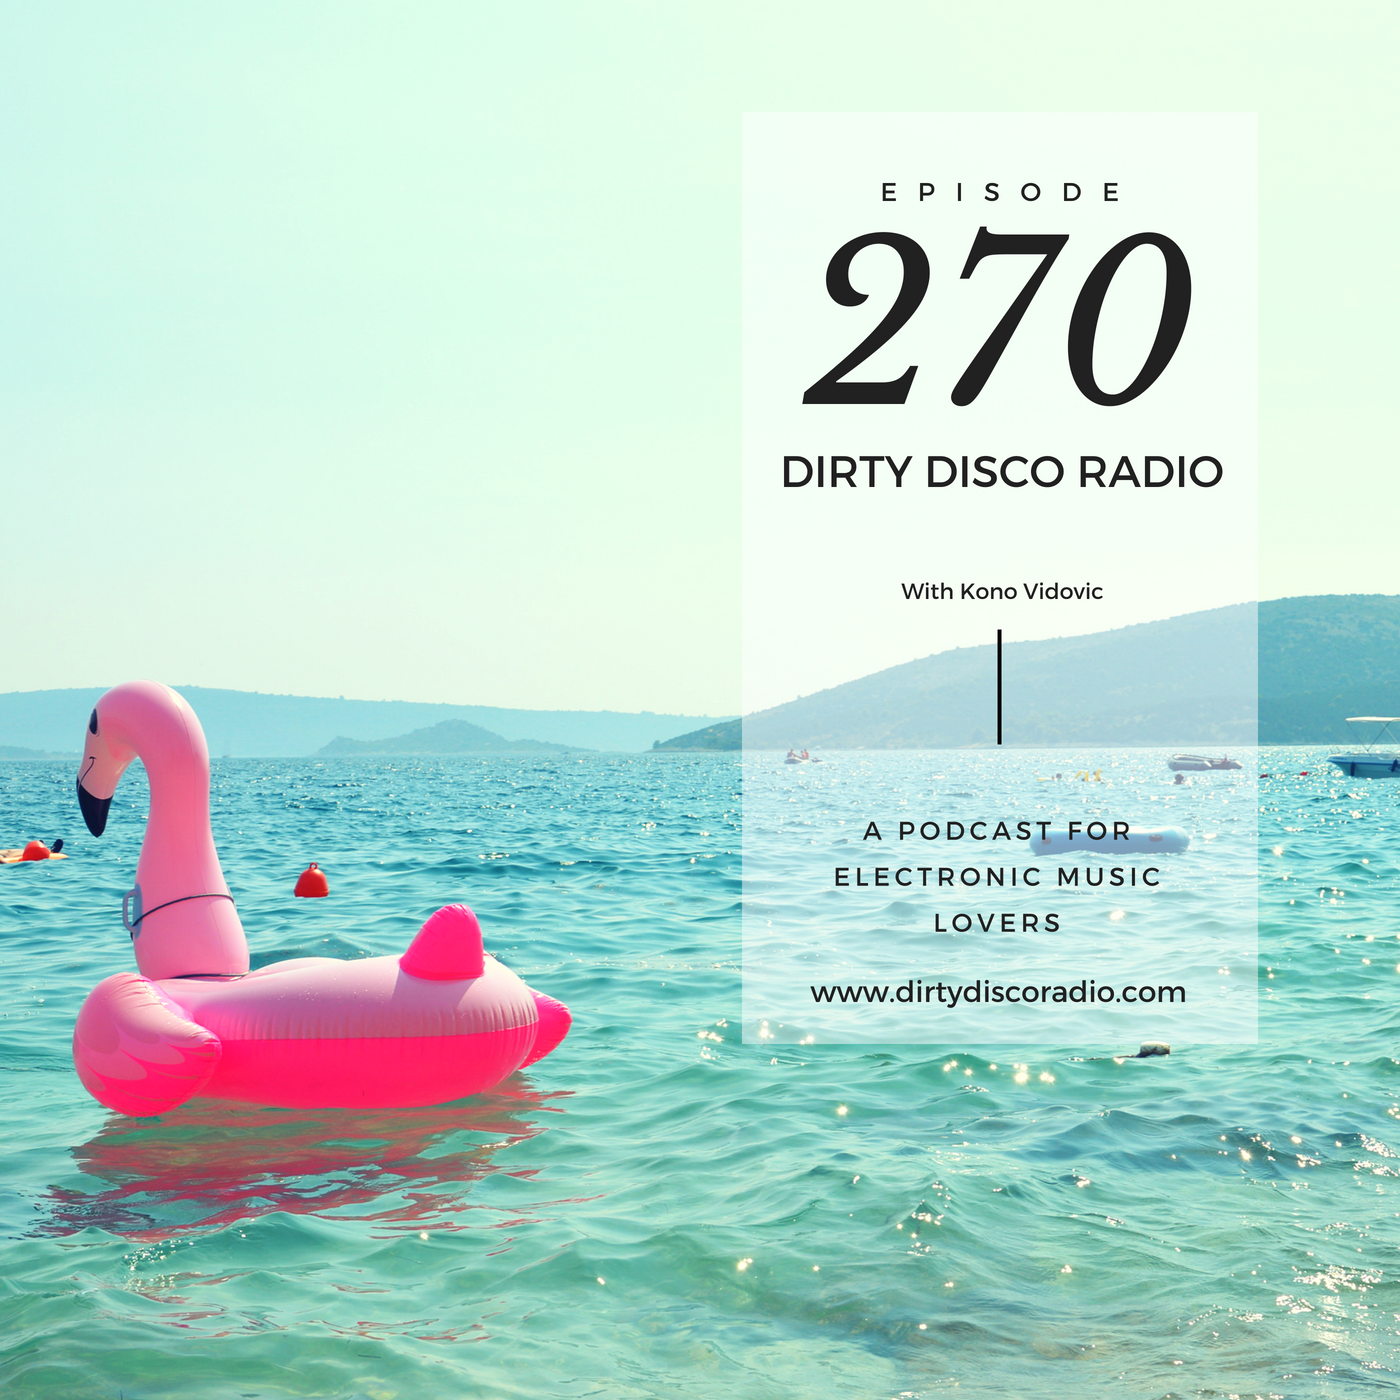 Back in the studio - Dirty Disco Radio 270